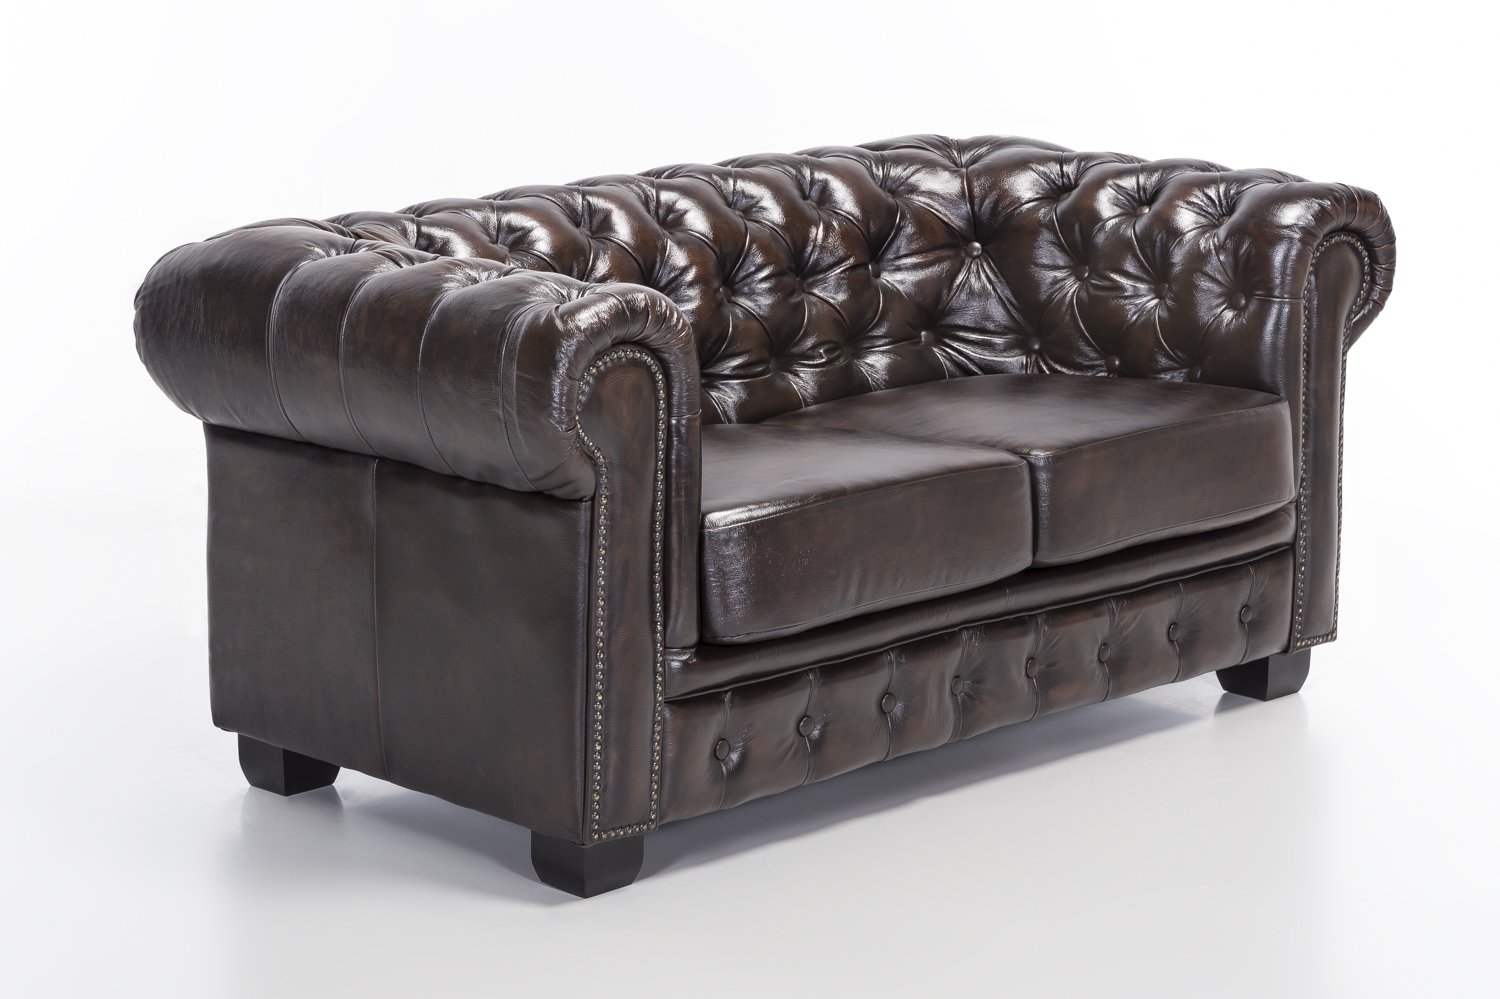 woodkings chesterfield sofa 2er braun vintage echtleder couch b rosofa polsterm bel 2 sitzer. Black Bedroom Furniture Sets. Home Design Ideas